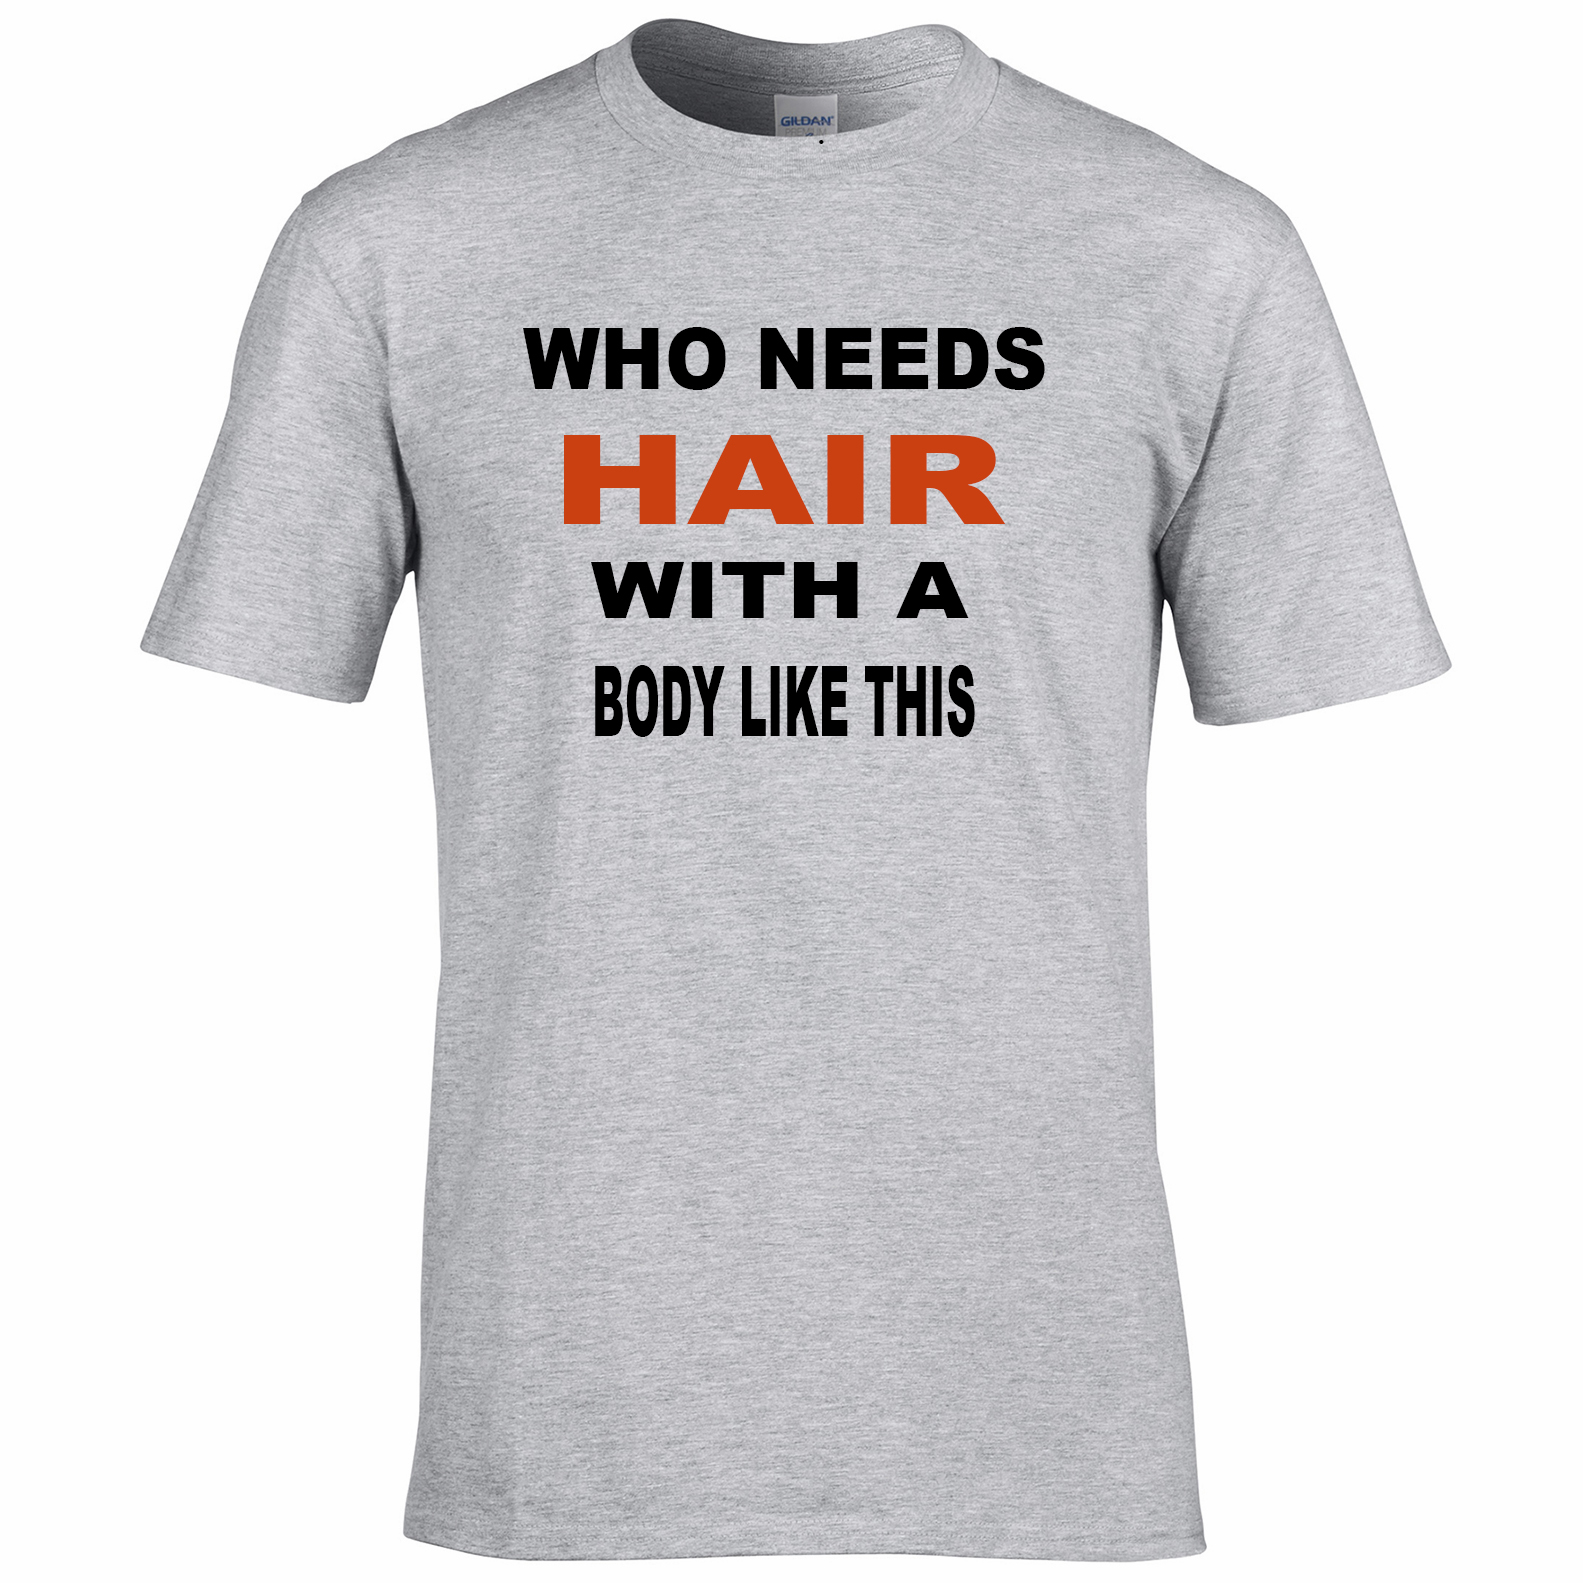 Cheap Funny Tee Shirts | Is Shirt